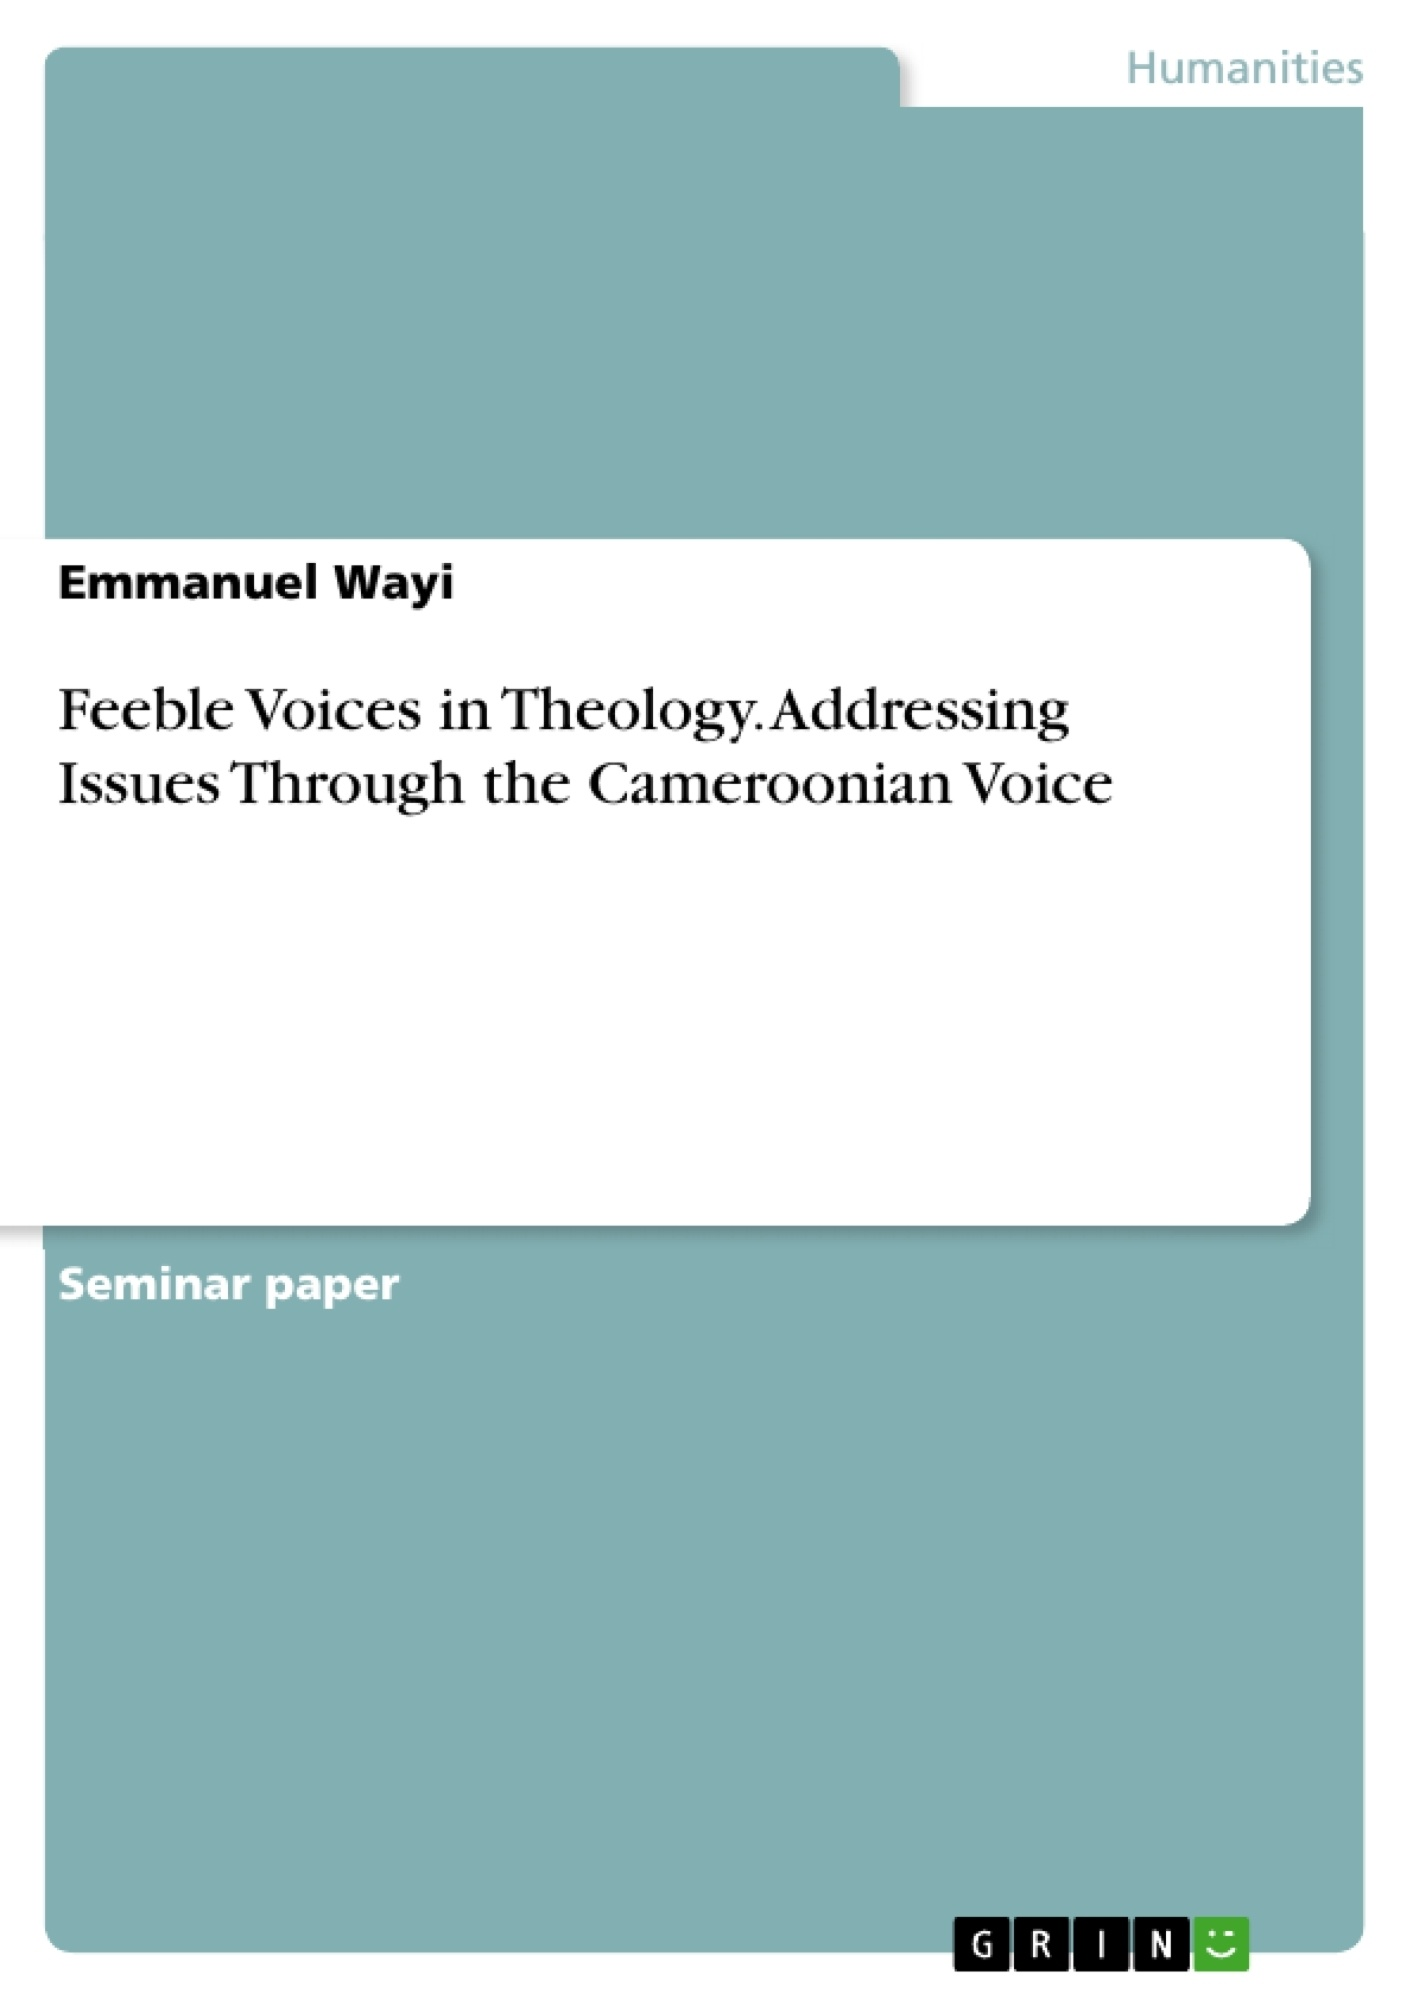 Title: Feeble Voices in Theology. Addressing Issues Through the Cameroonian Voice